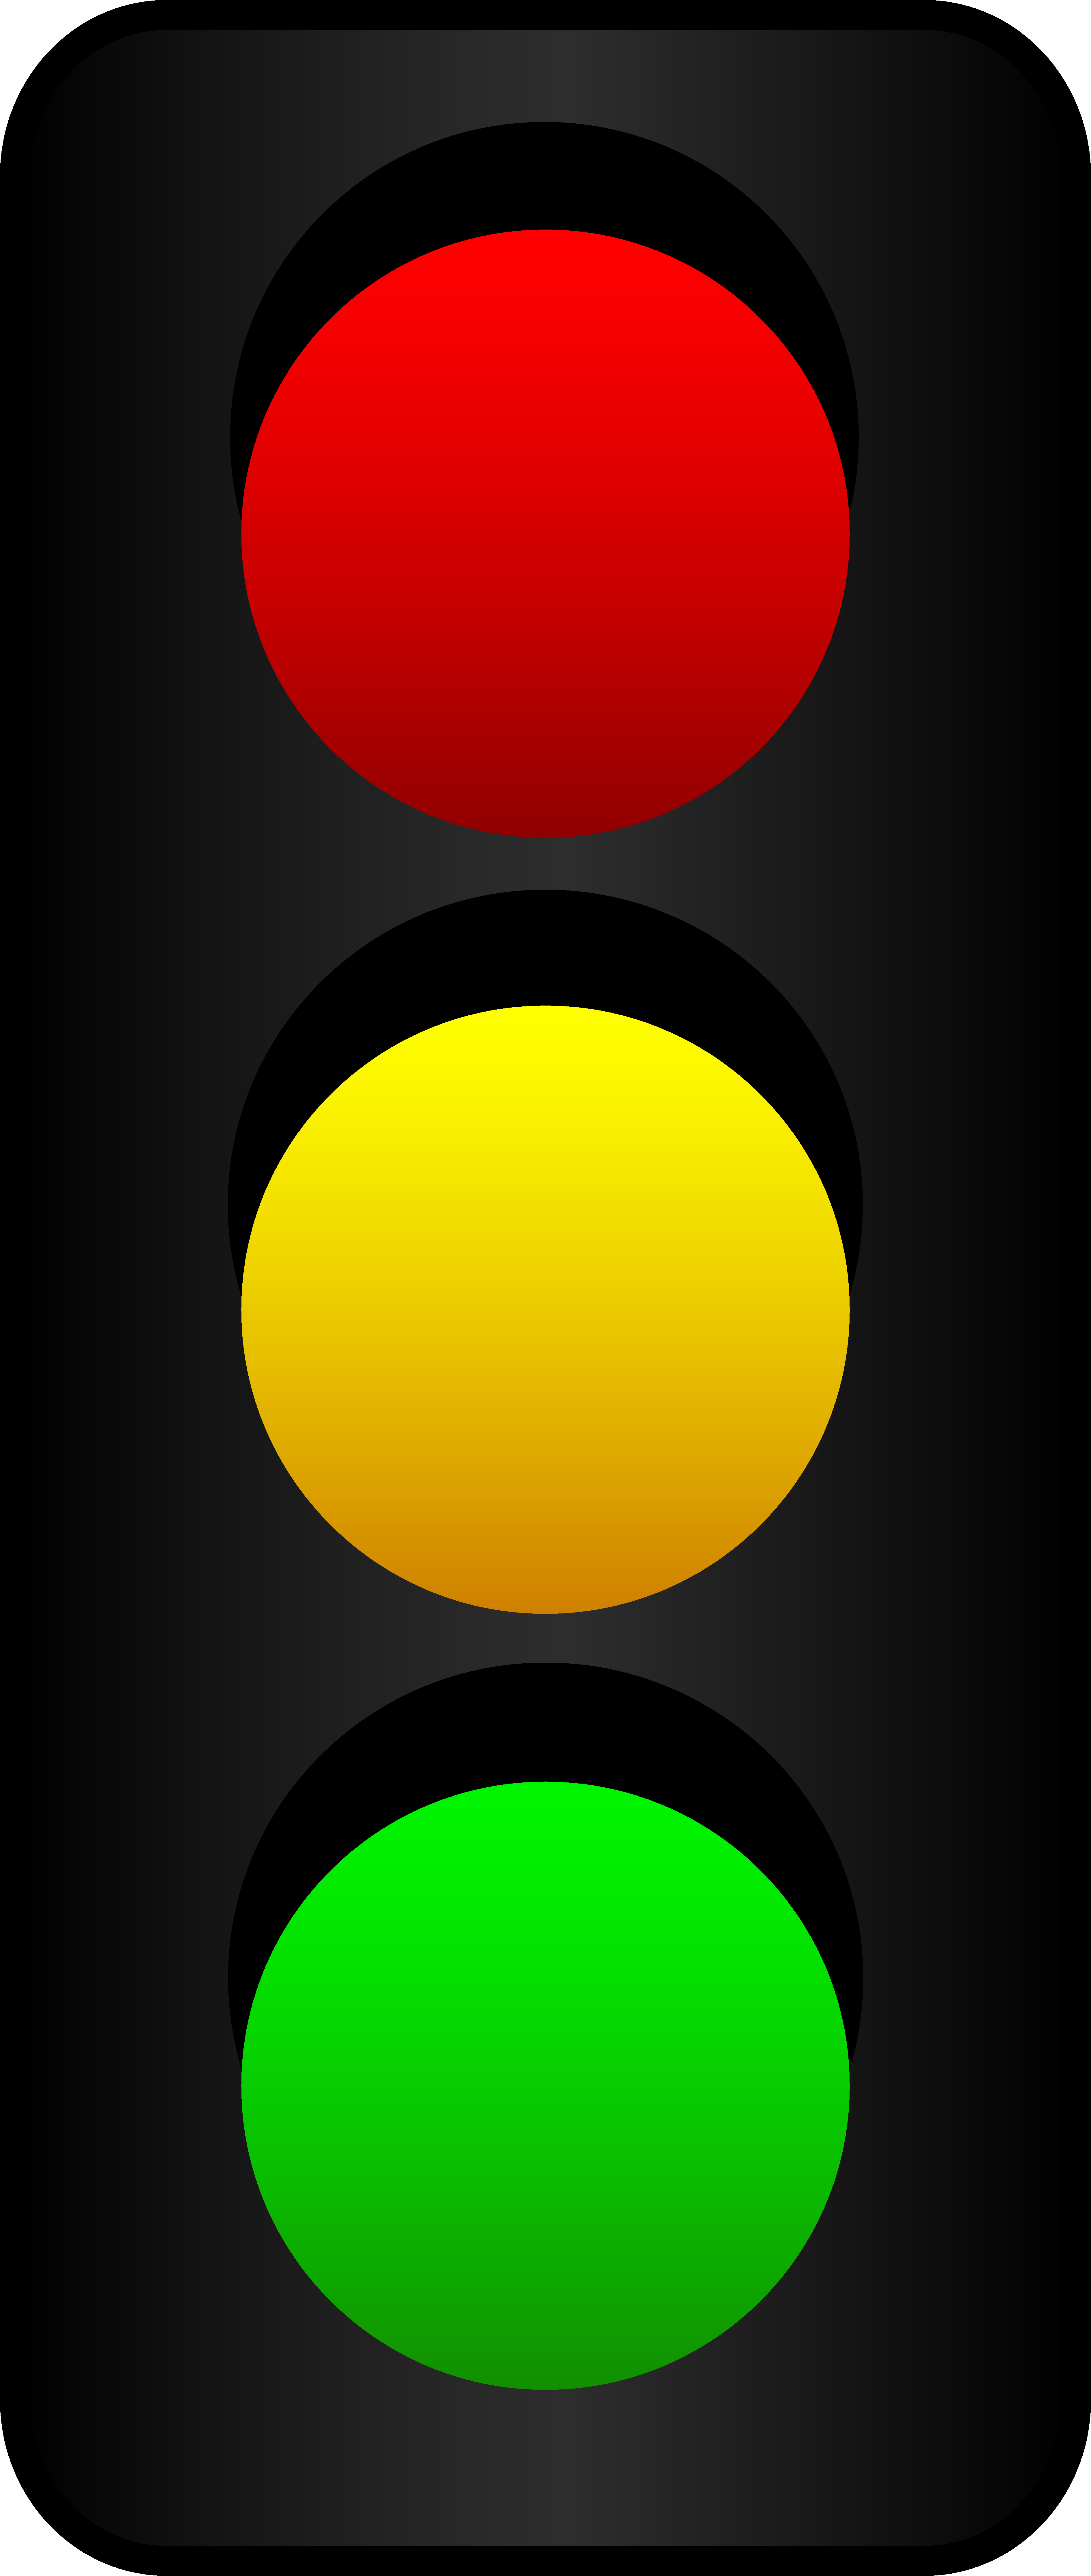 Thank God everyone agrees on the color of traffic lights - Traffic Light PNG